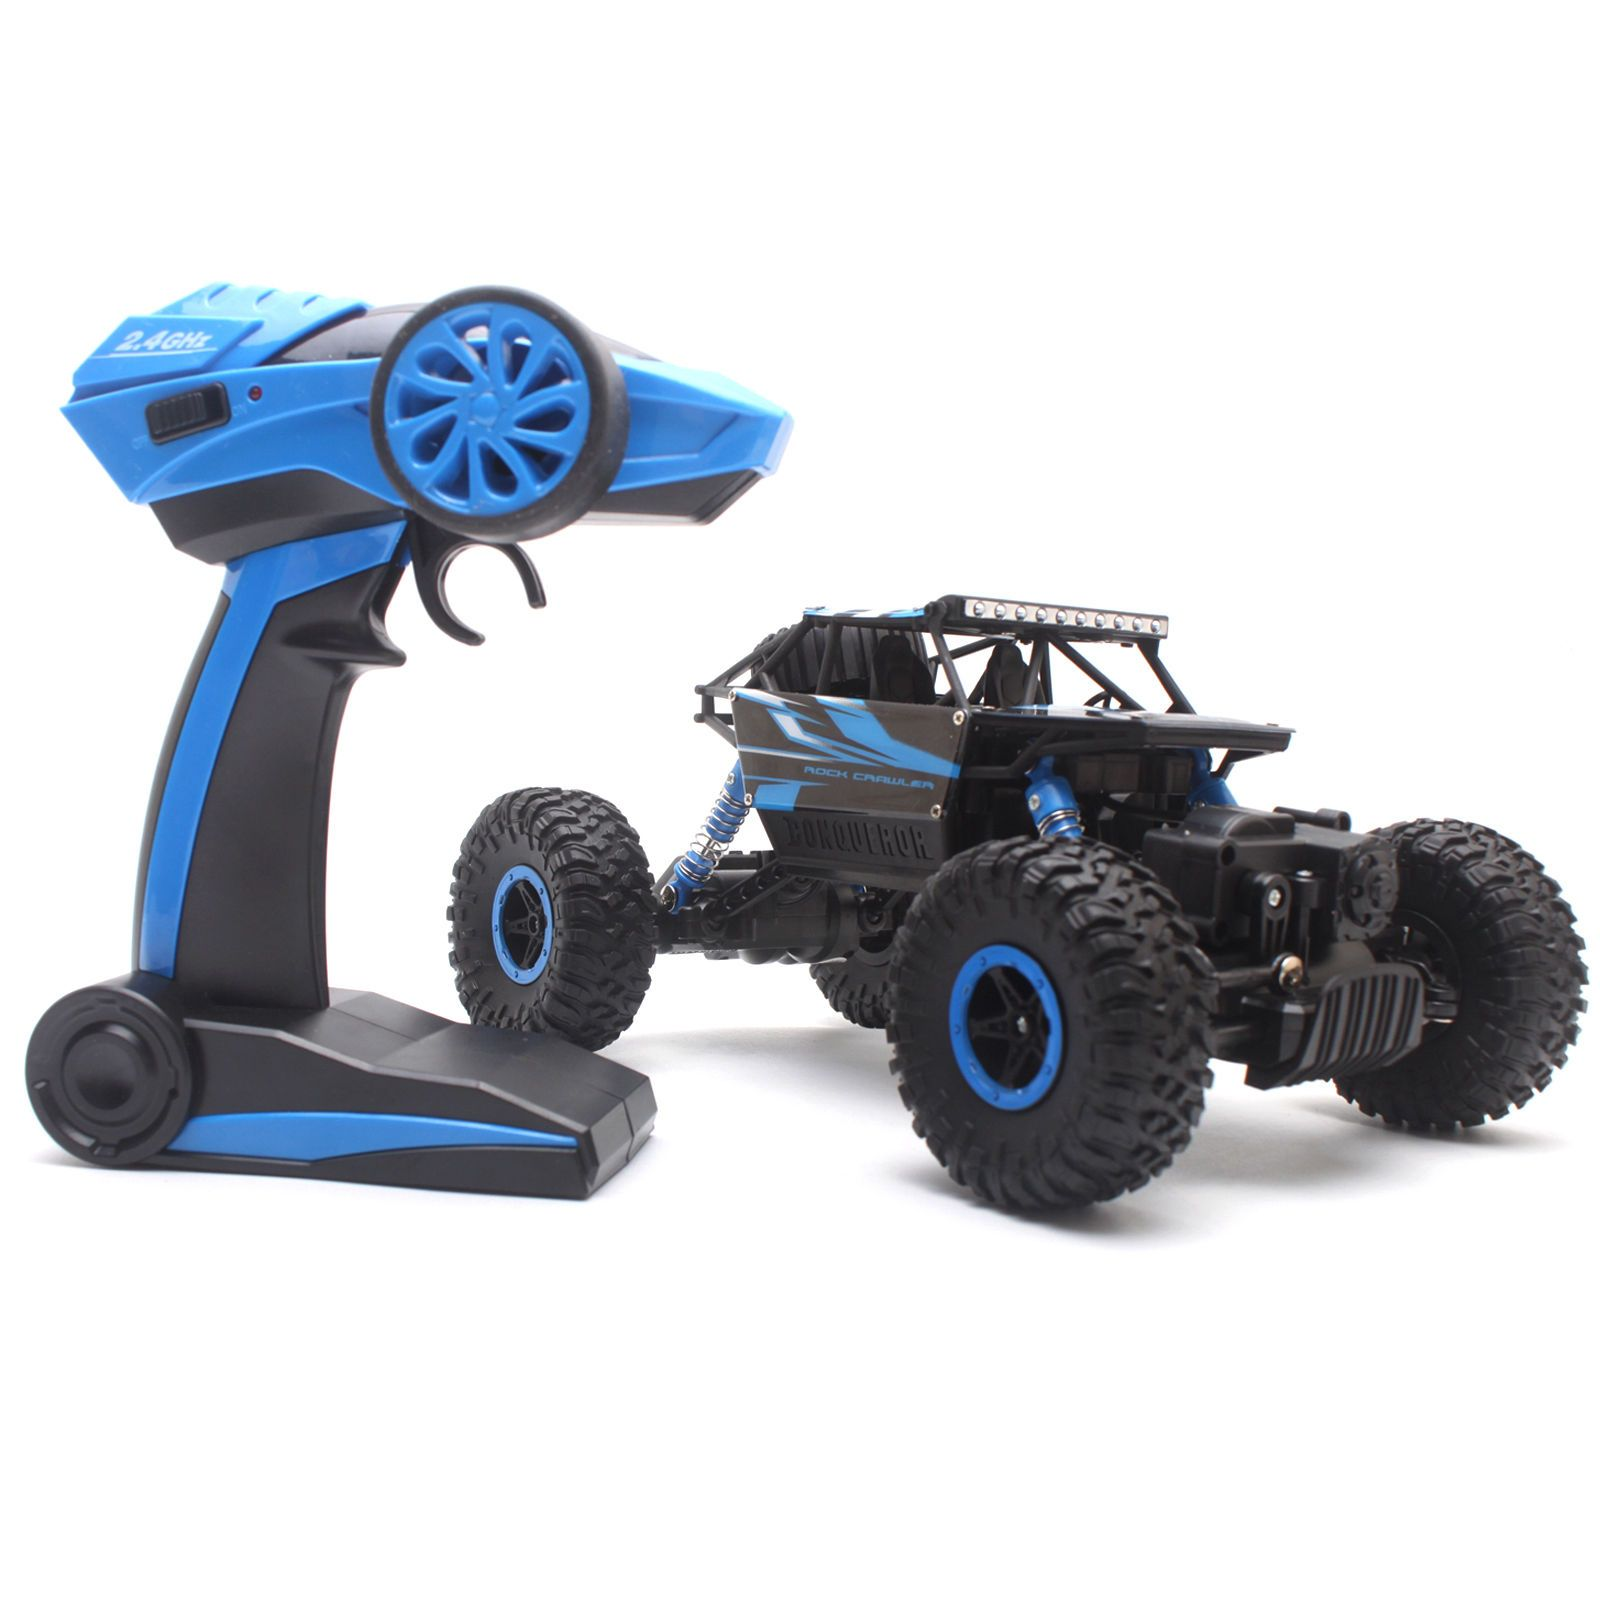 4WD RC Monster Truck Off-Road Vehicle 2.4G Remote Control